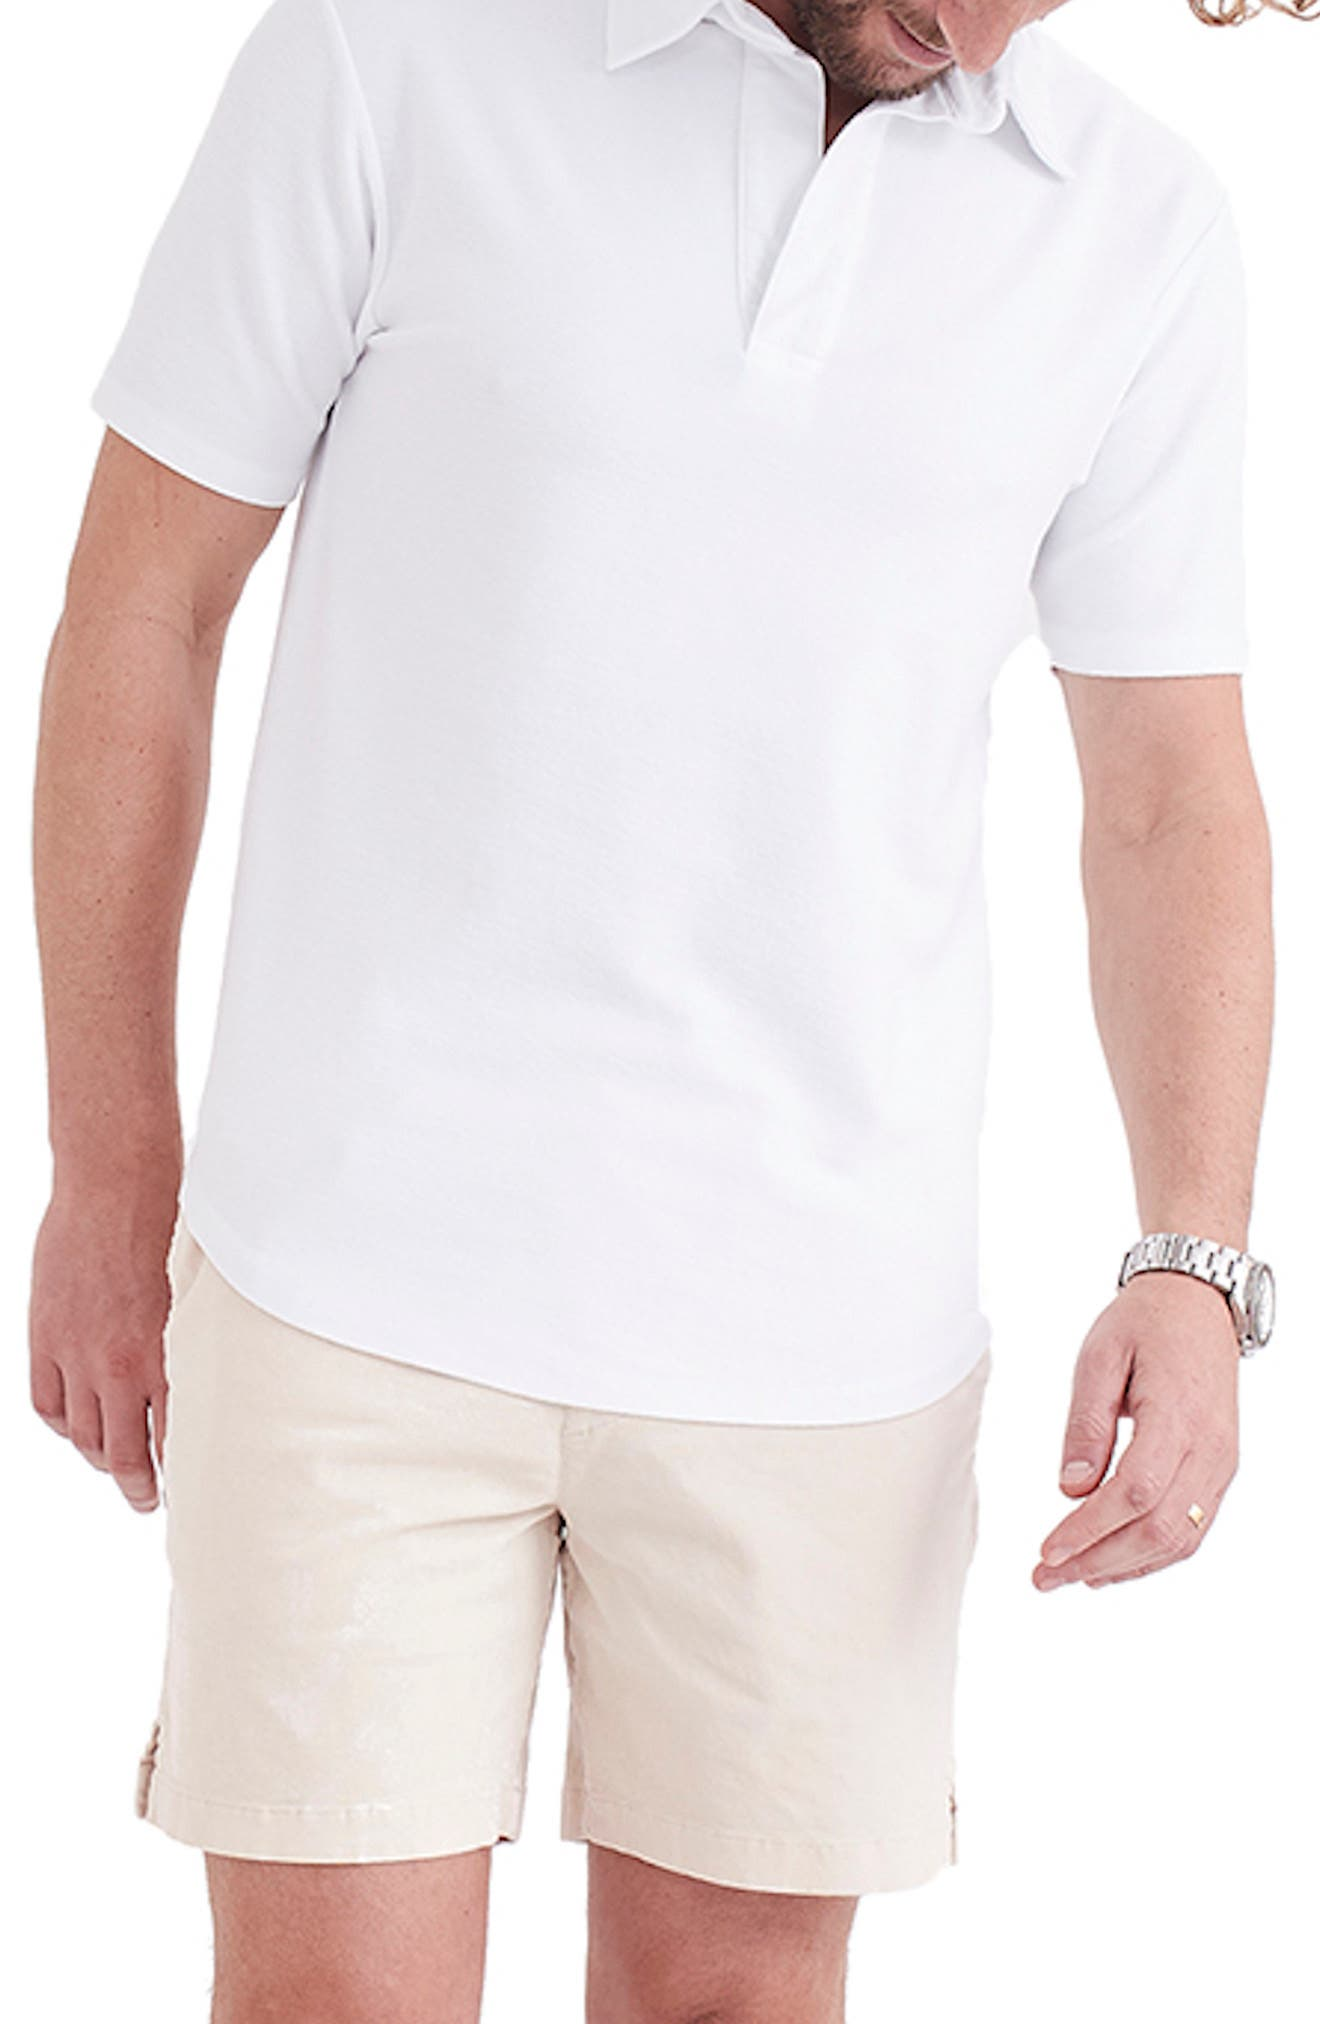 1930s Men's Fashion Guide- What Did Men Wear? Goodlife Sun Faded Reverso Curve Hem Polo Size XXL - White at Nordstrom Rack $49.97 AT vintagedancer.com